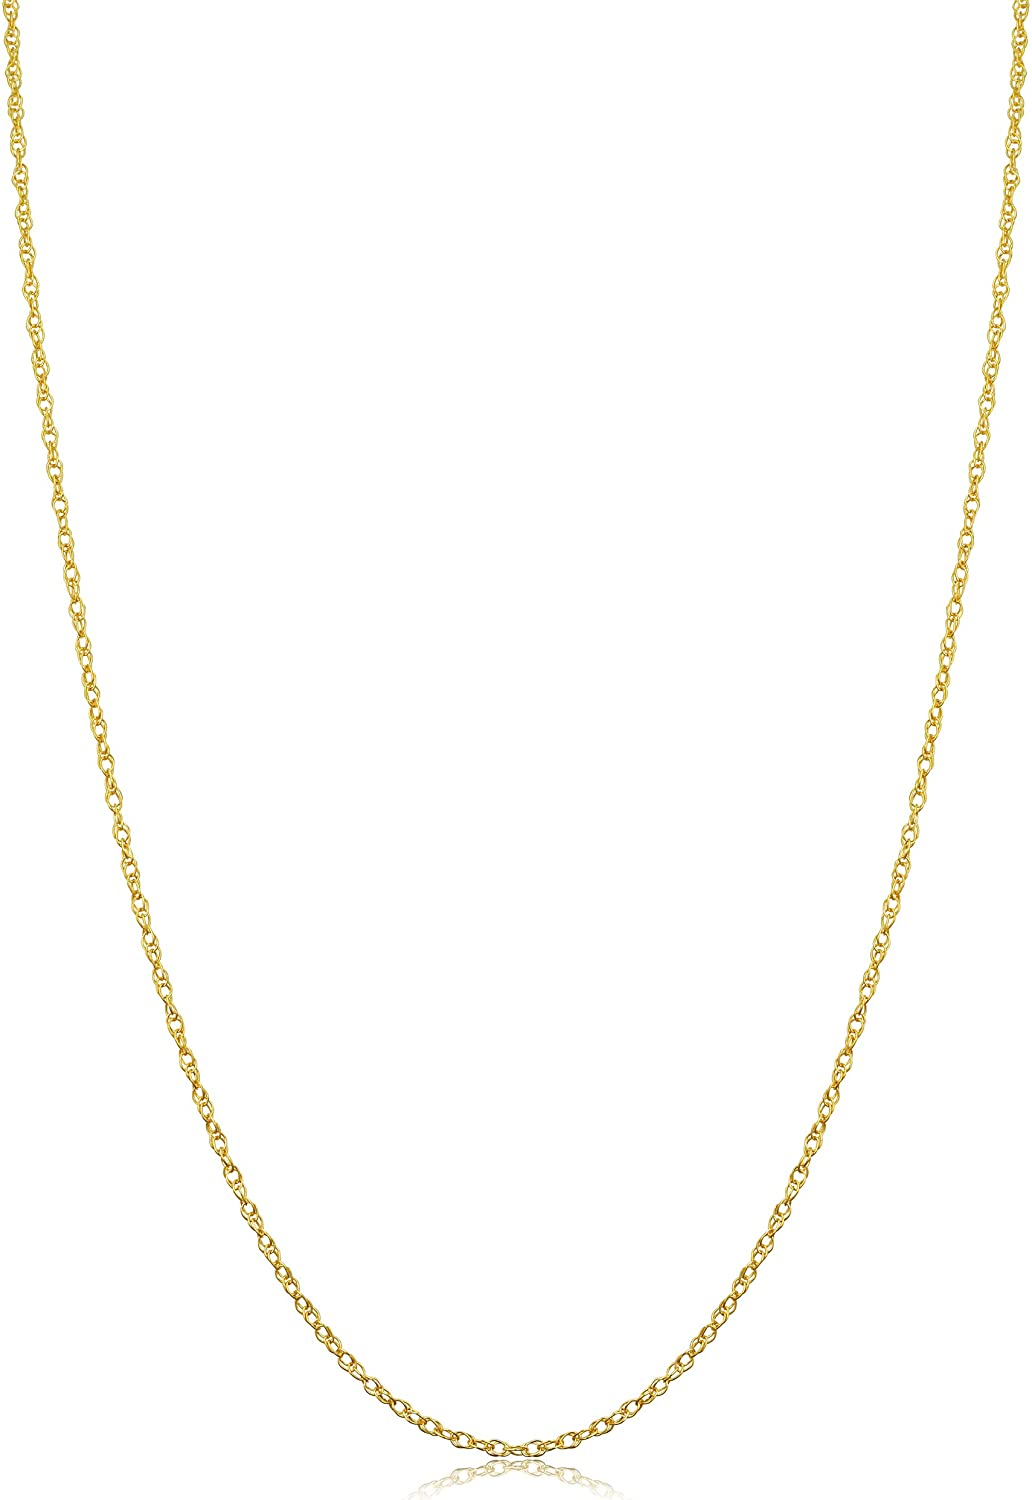 10k Yellow Gold Rope Chain Barely-there Necklace (0.7 mm, 0.9 mm, 1 mm or 1.3 mm) - Thin And Lightweight